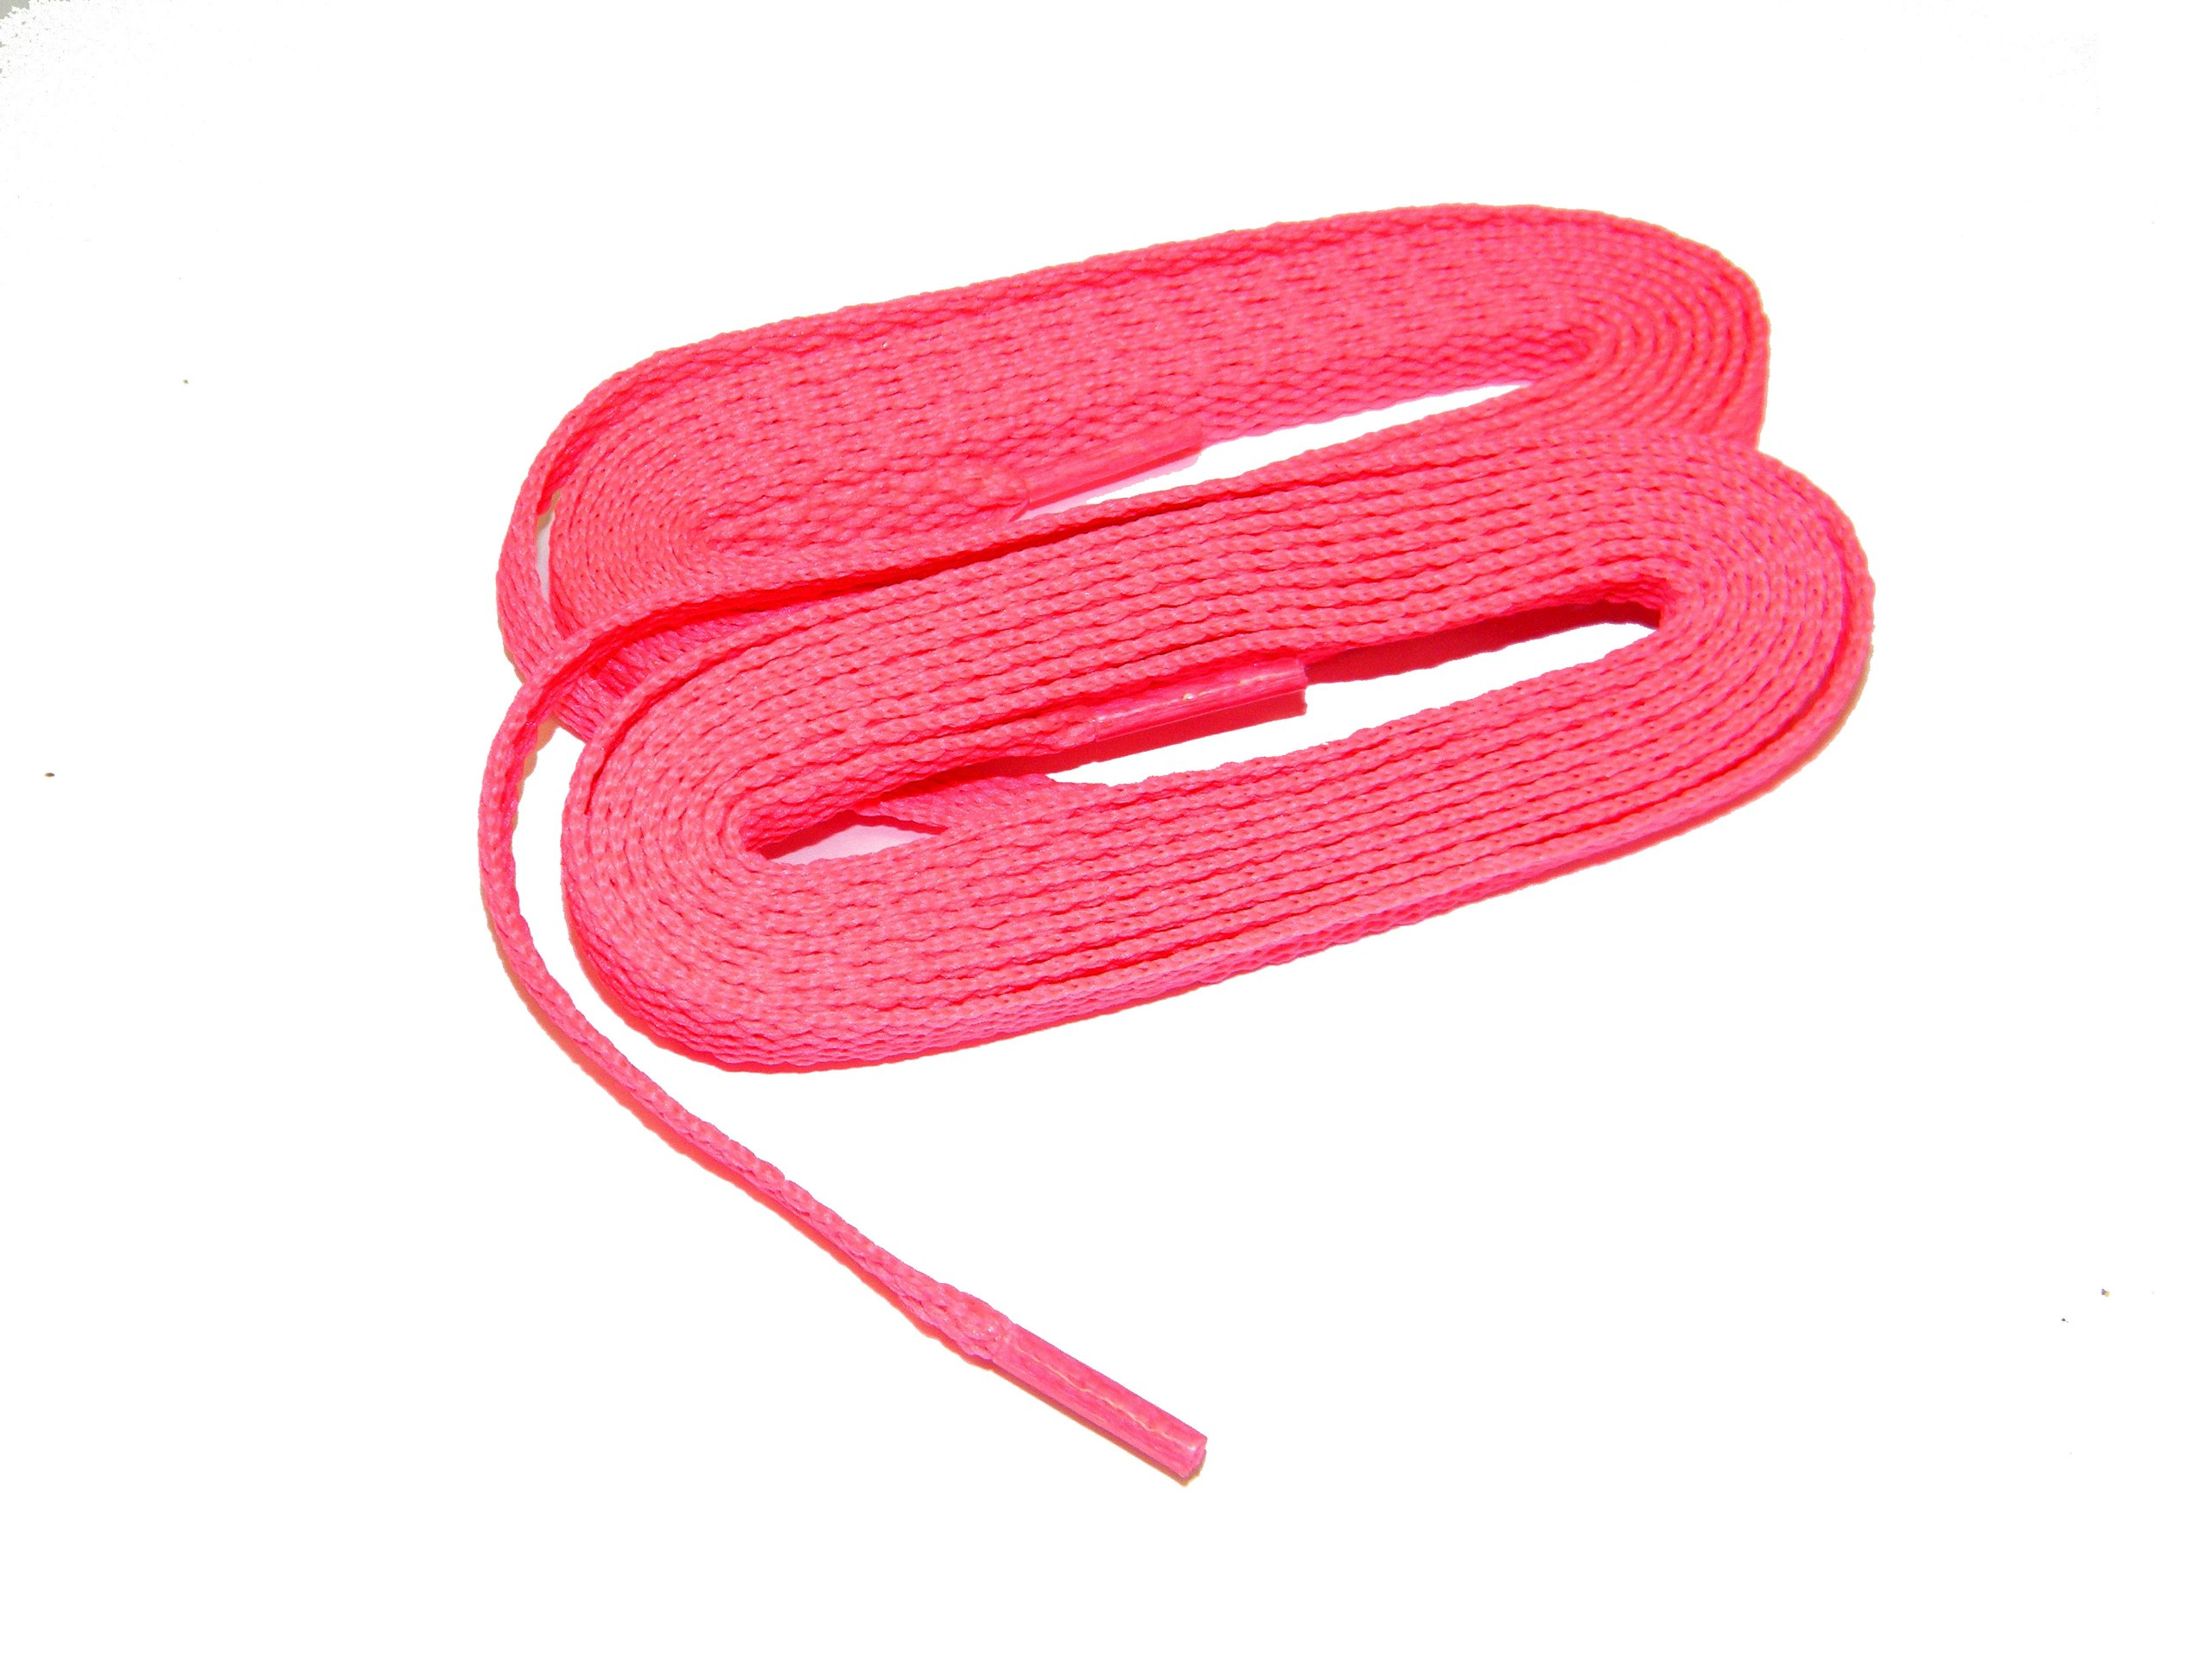 GREATLACES 45 Inch Hot Pink Team Laces (Tm) Bulk 48 Pair Pack Athletic Shoelaces Pink Your Team for Breast Cancer Awareness!